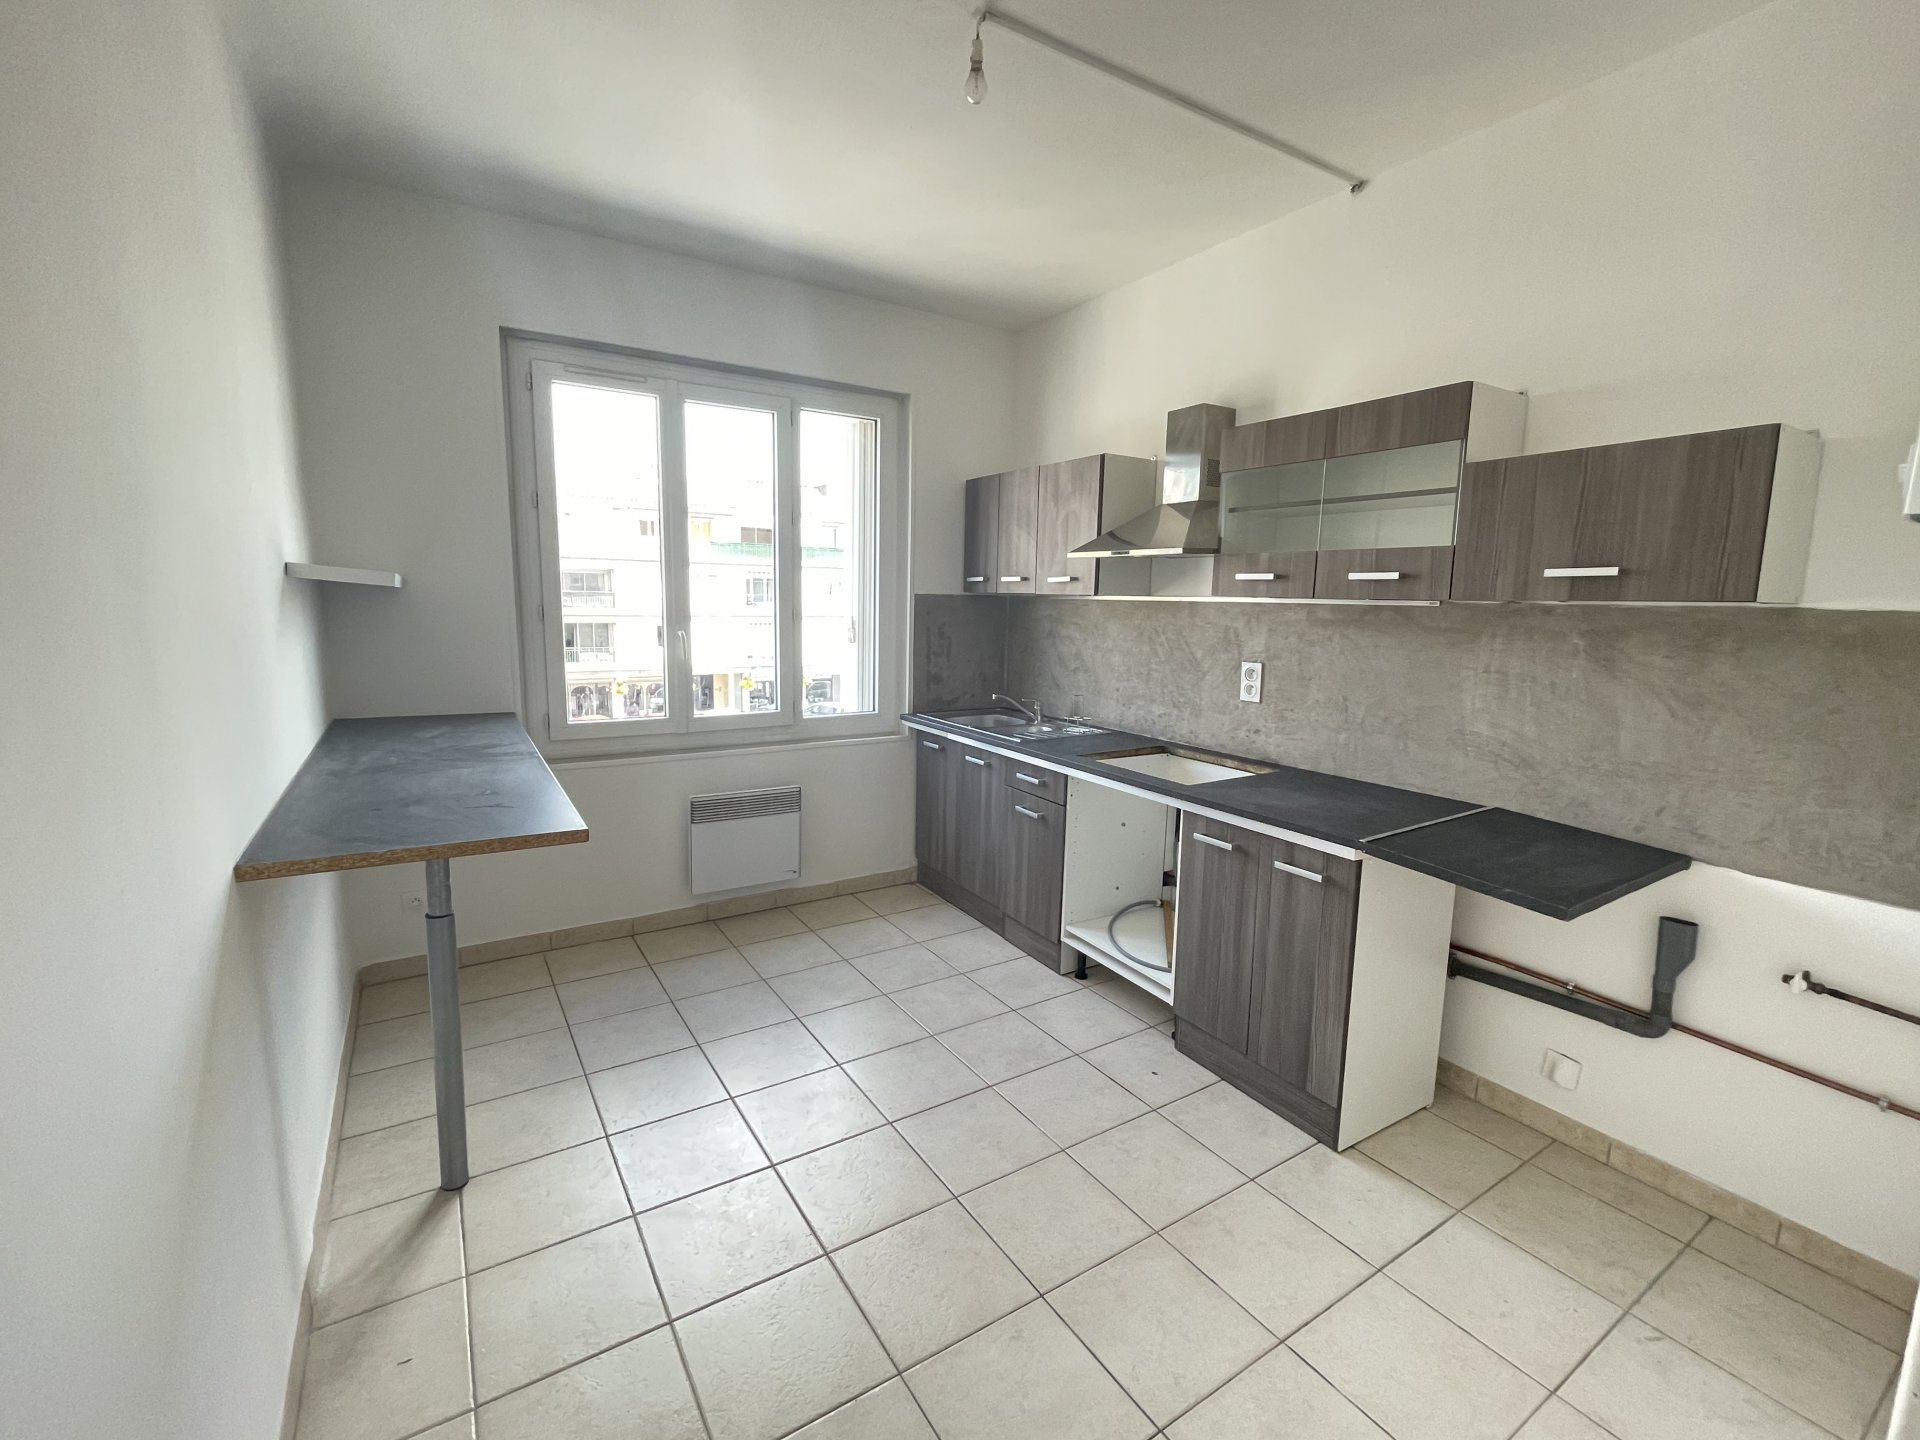 Location Appartement TARASCON Mandat : 0549